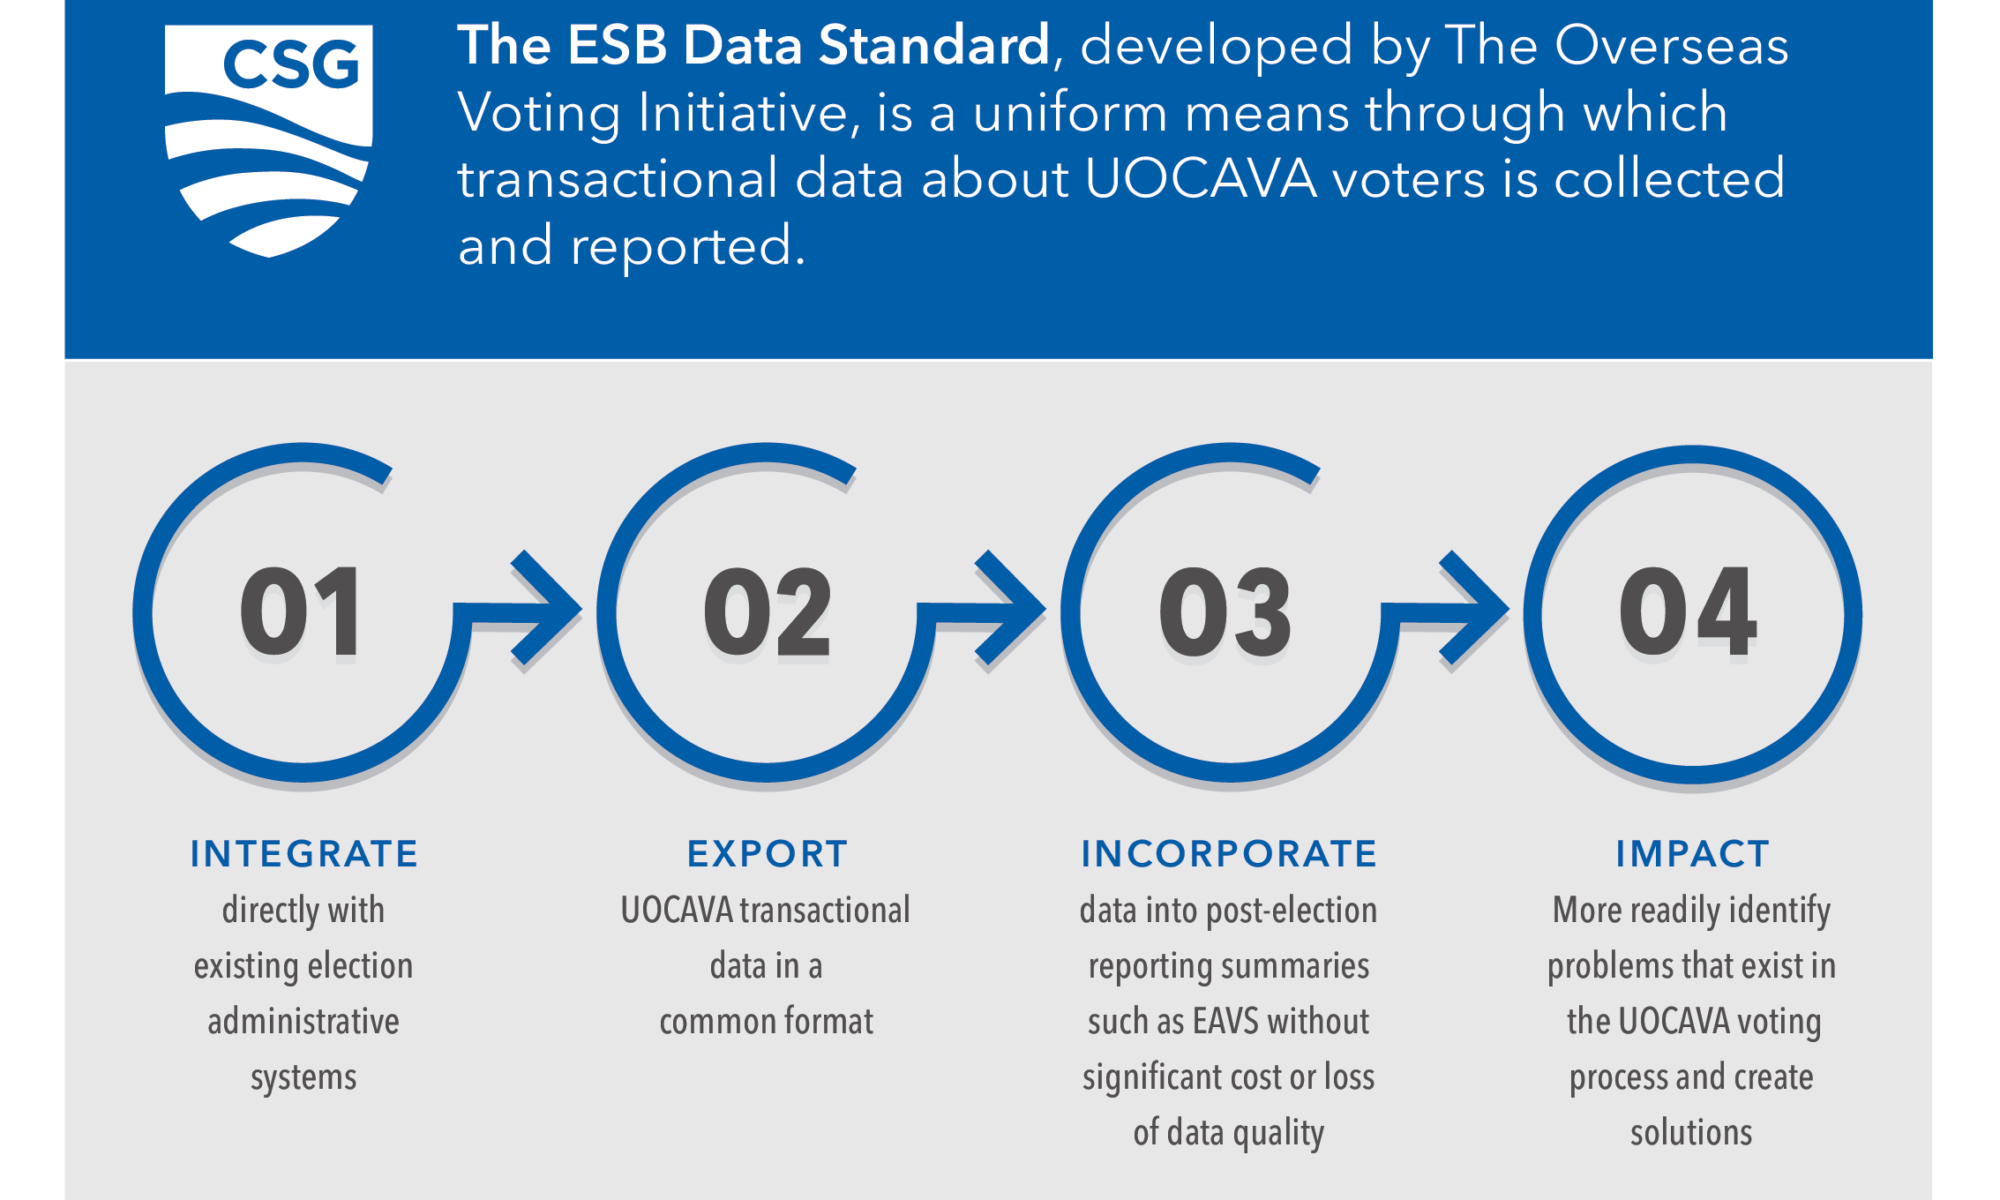 benefits of the ESB data standard